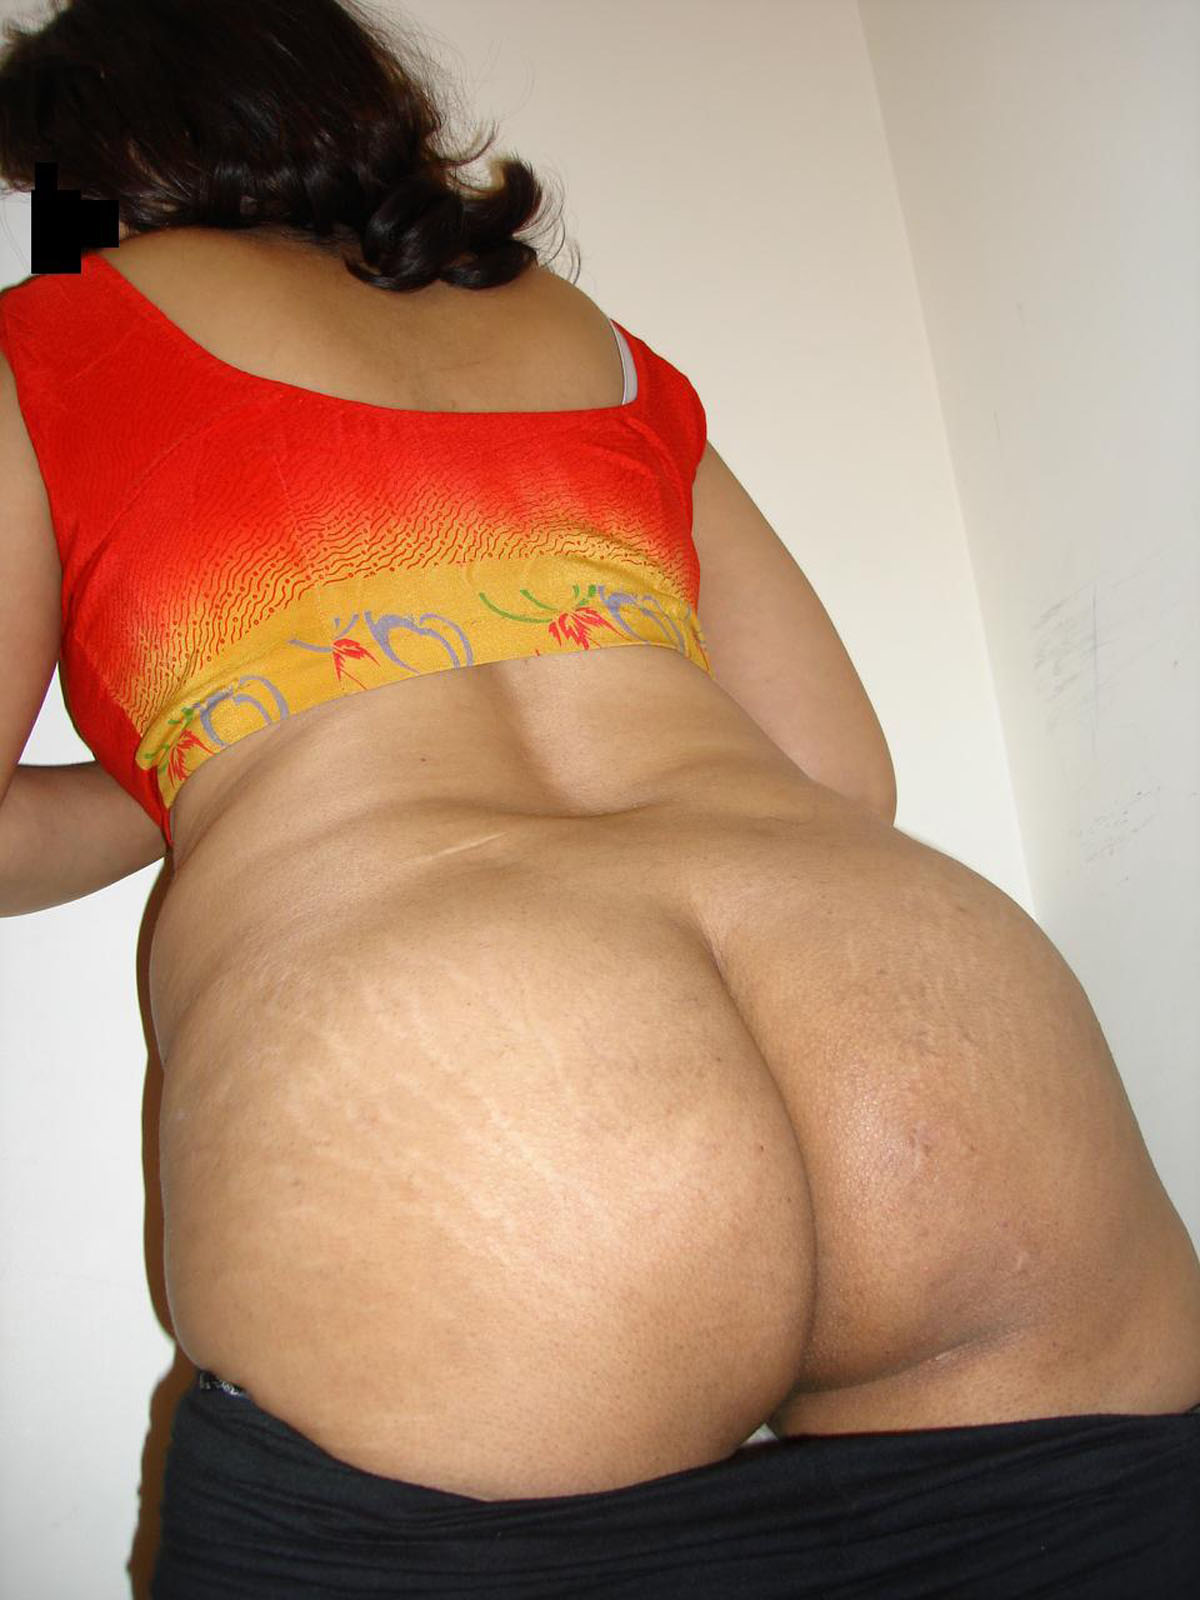 aunty Hot big ass